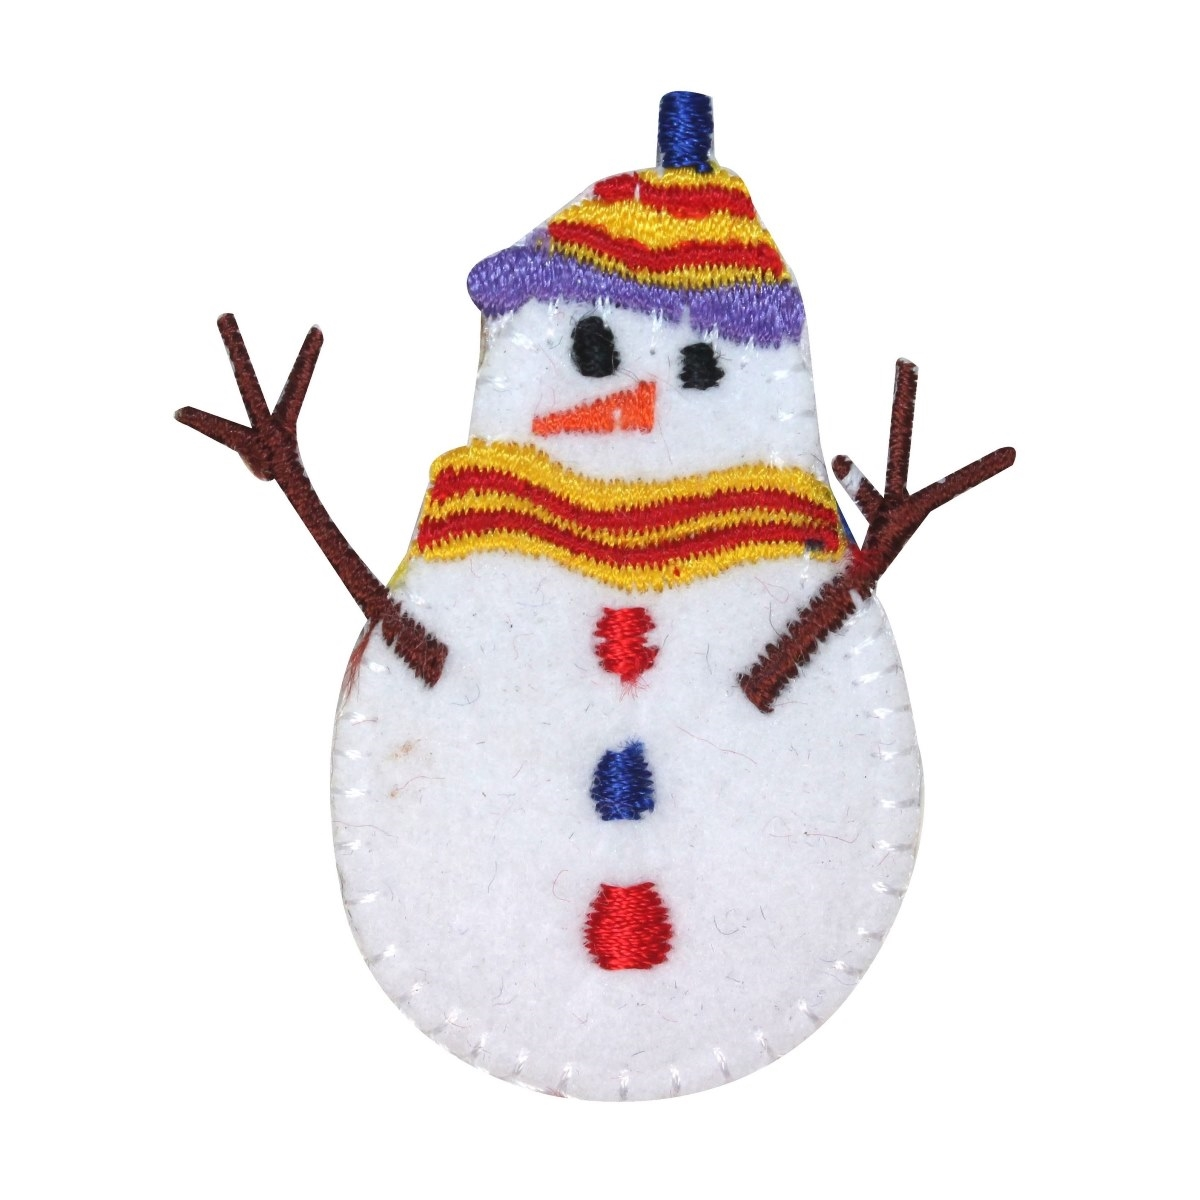 Christmas Tree Patch: ID 8150B Snowman Ornament Patch Christmas Tree Embroidered